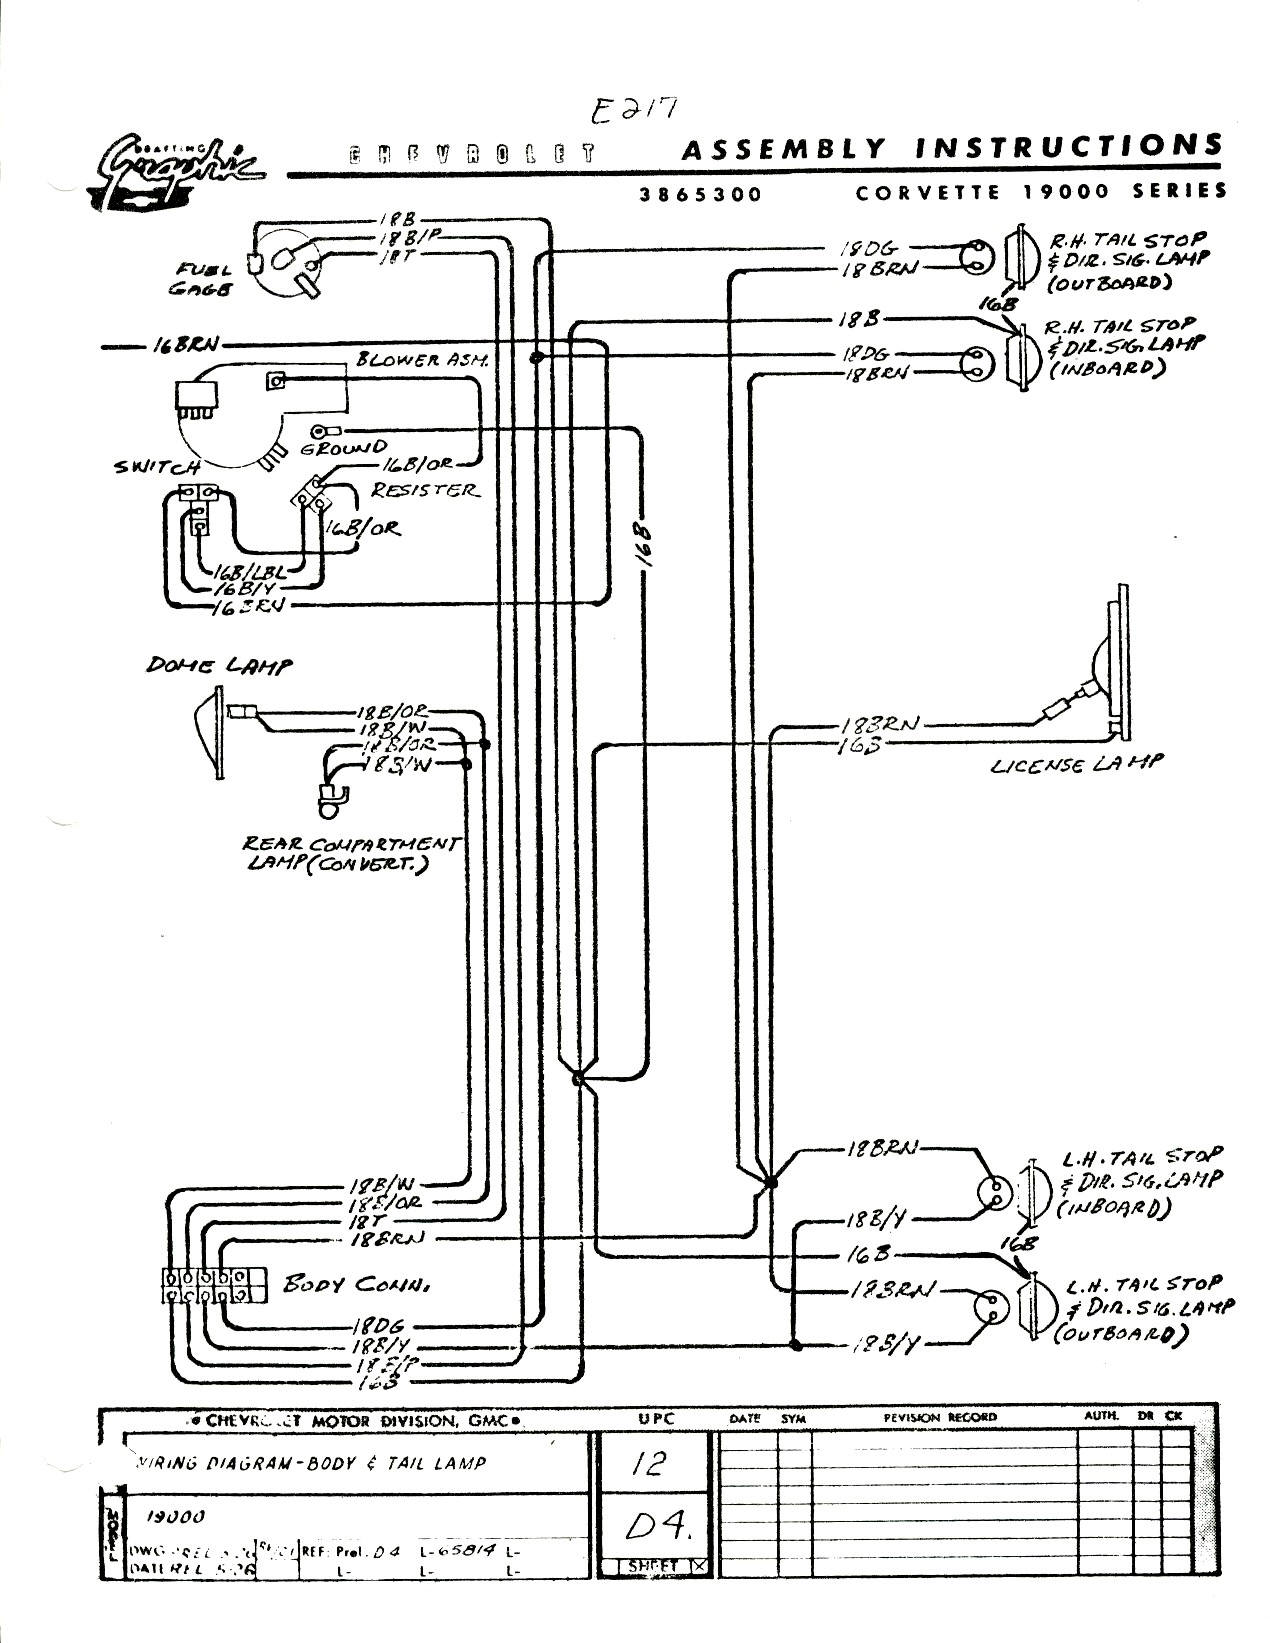 Jacobs Electronic Ignition Wiring Diagram - All Diagram ... on